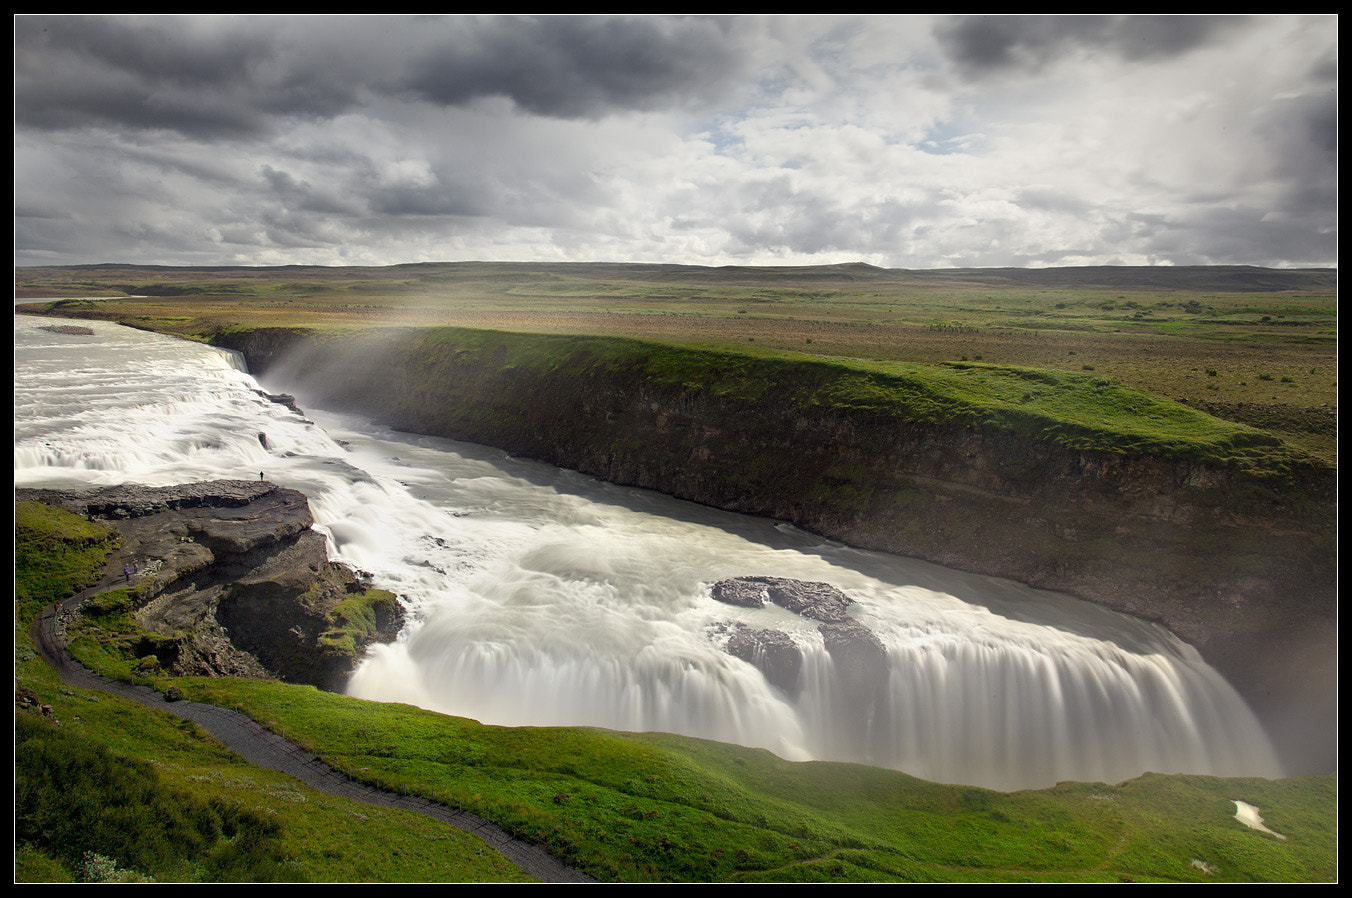 Photograph Iceland by Victoria Rogotneva on 500px